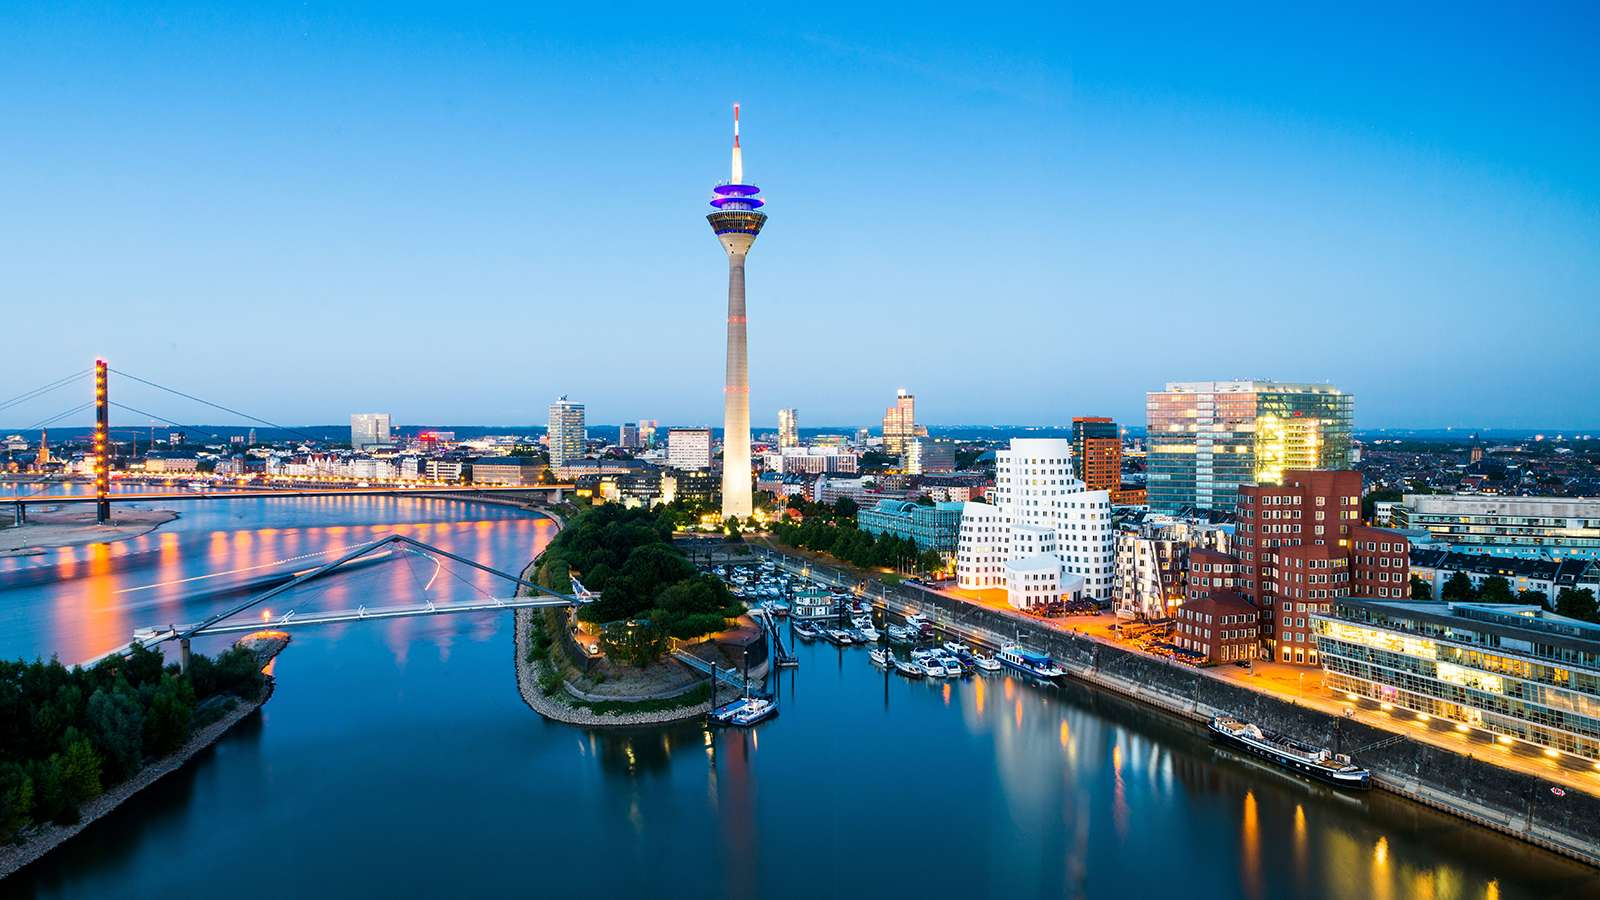 Explore Hamburg on foot from Centro Hotels, because they offer easy access to the Alster and other places of interest on foot.